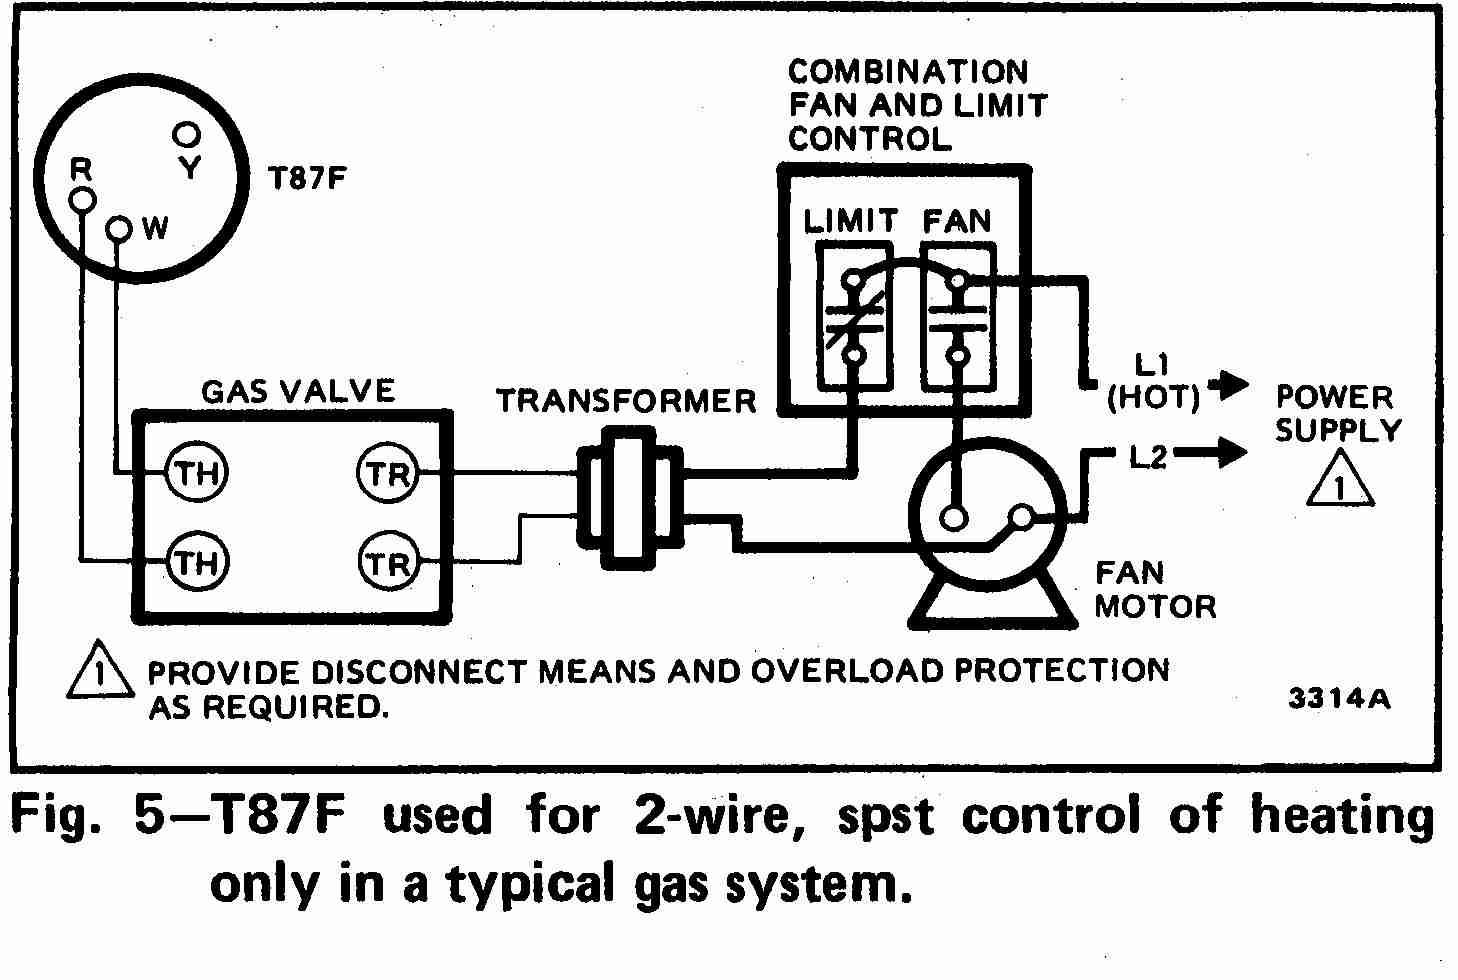 TT_T87F_0002_2Wg_DJF?resize=665%2C447 totaline thermostat wiring diagram p474 wiring diagram totaline thermostat p474-1010 wiring diagram at bakdesigns.co